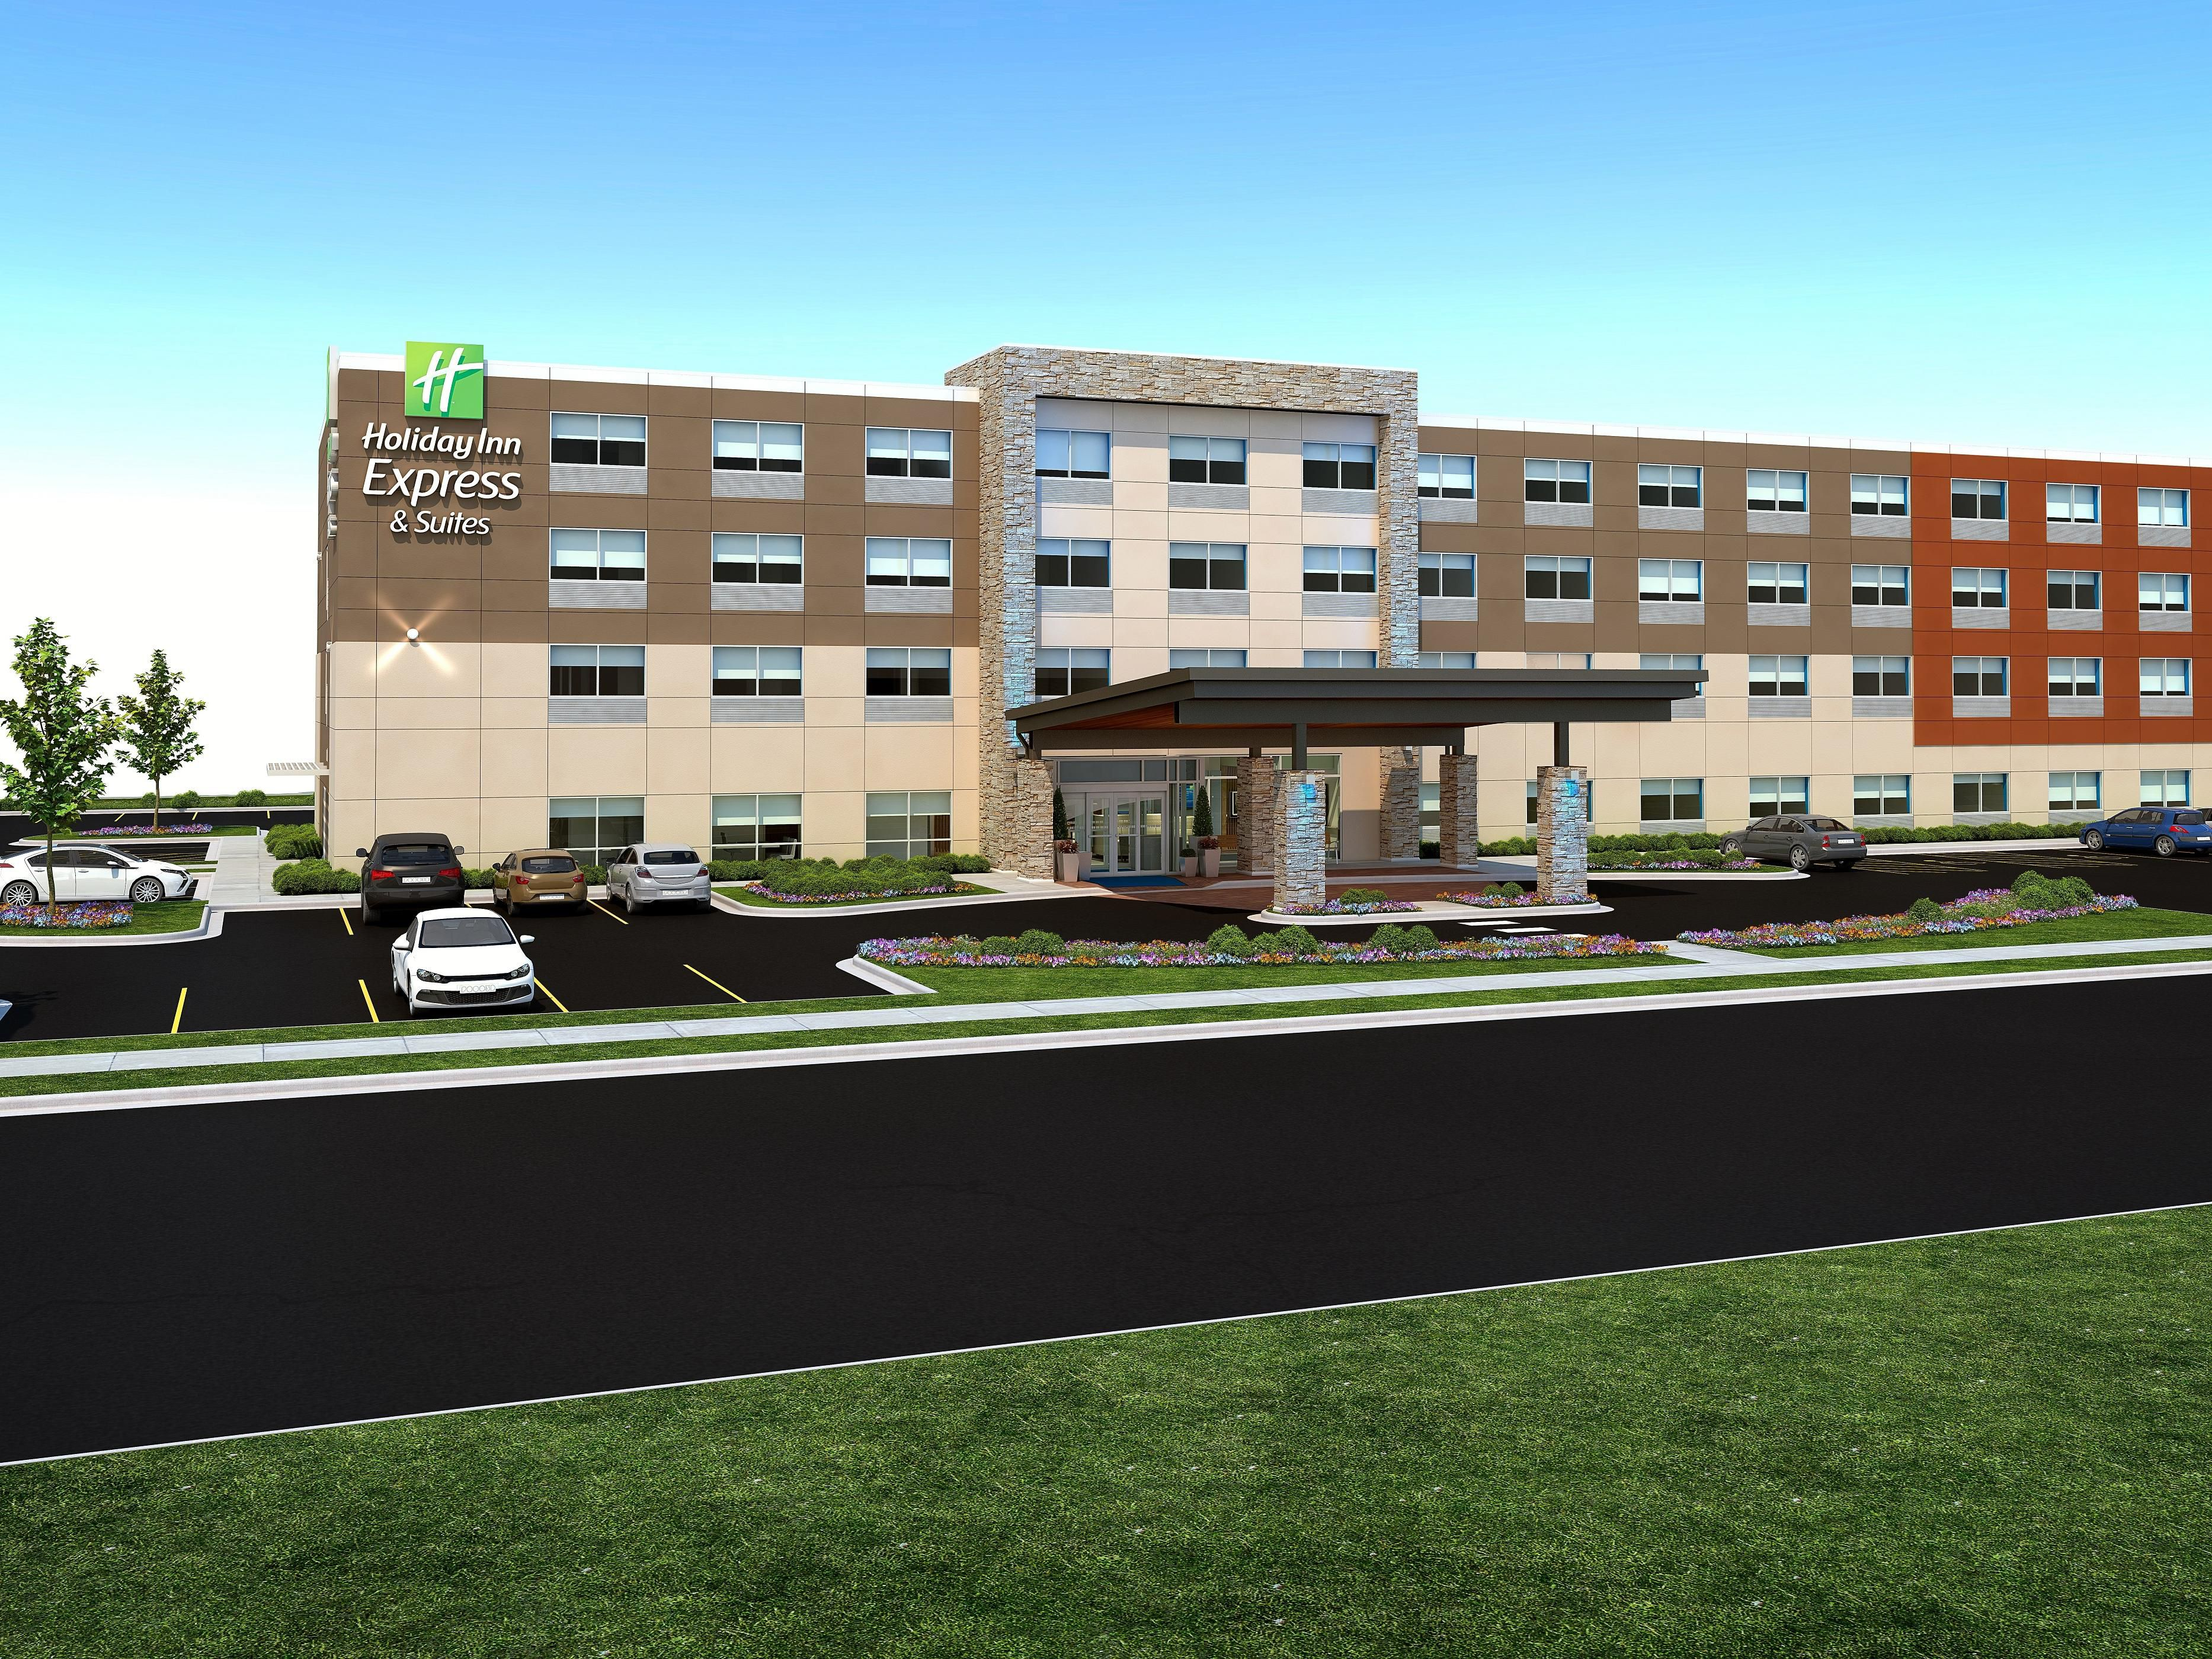 La Quinta Inn & Suites Indianapolis South is located at the junction of Interstates 65 and , southeast of downtown Indianapolis near Beech Grove, Indiana.